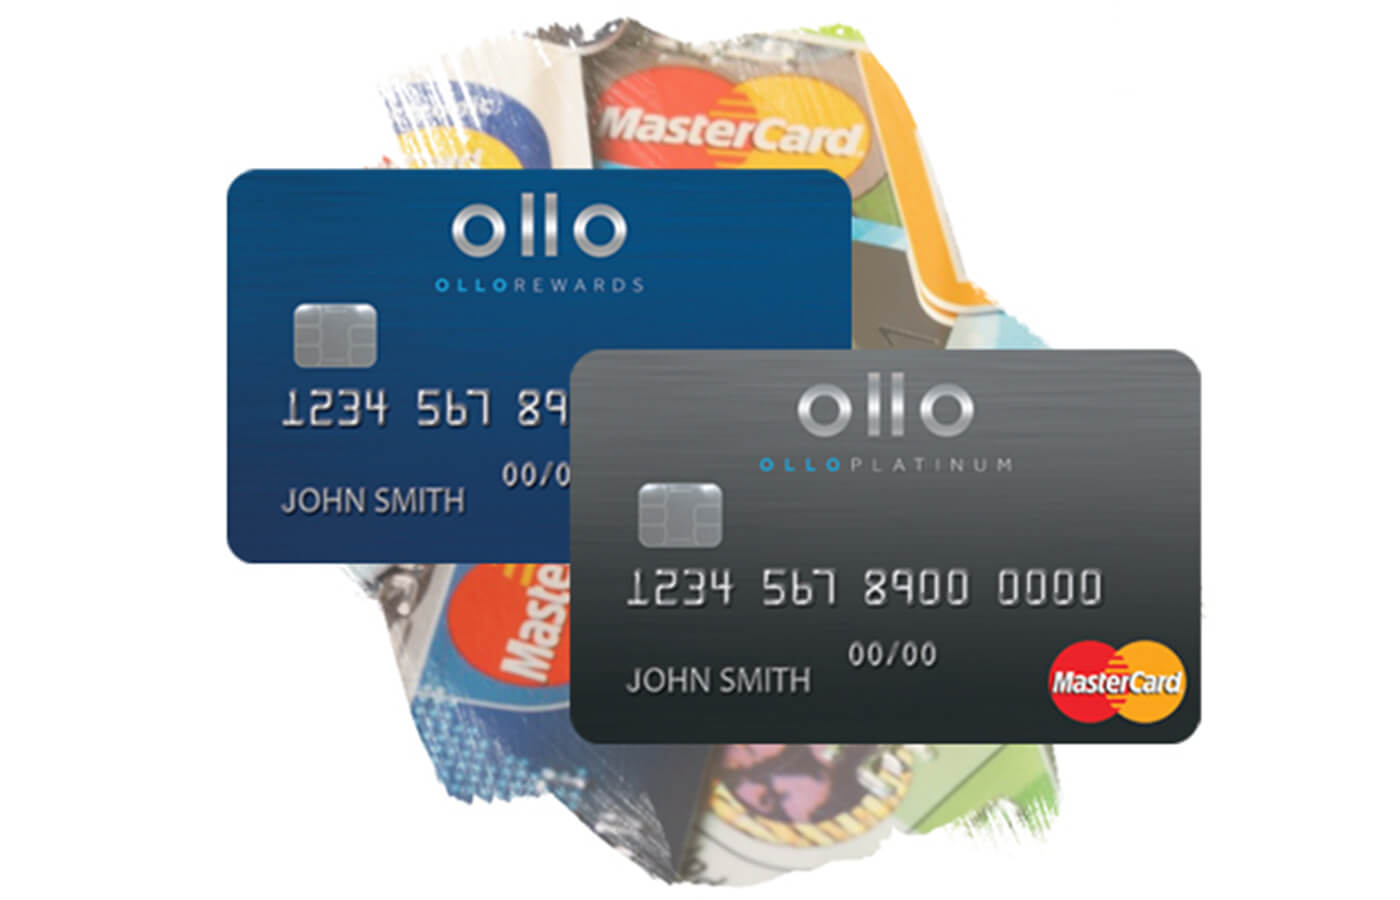 Ollo cards a credit card for those with lower credit scores experian reheart Choice Image